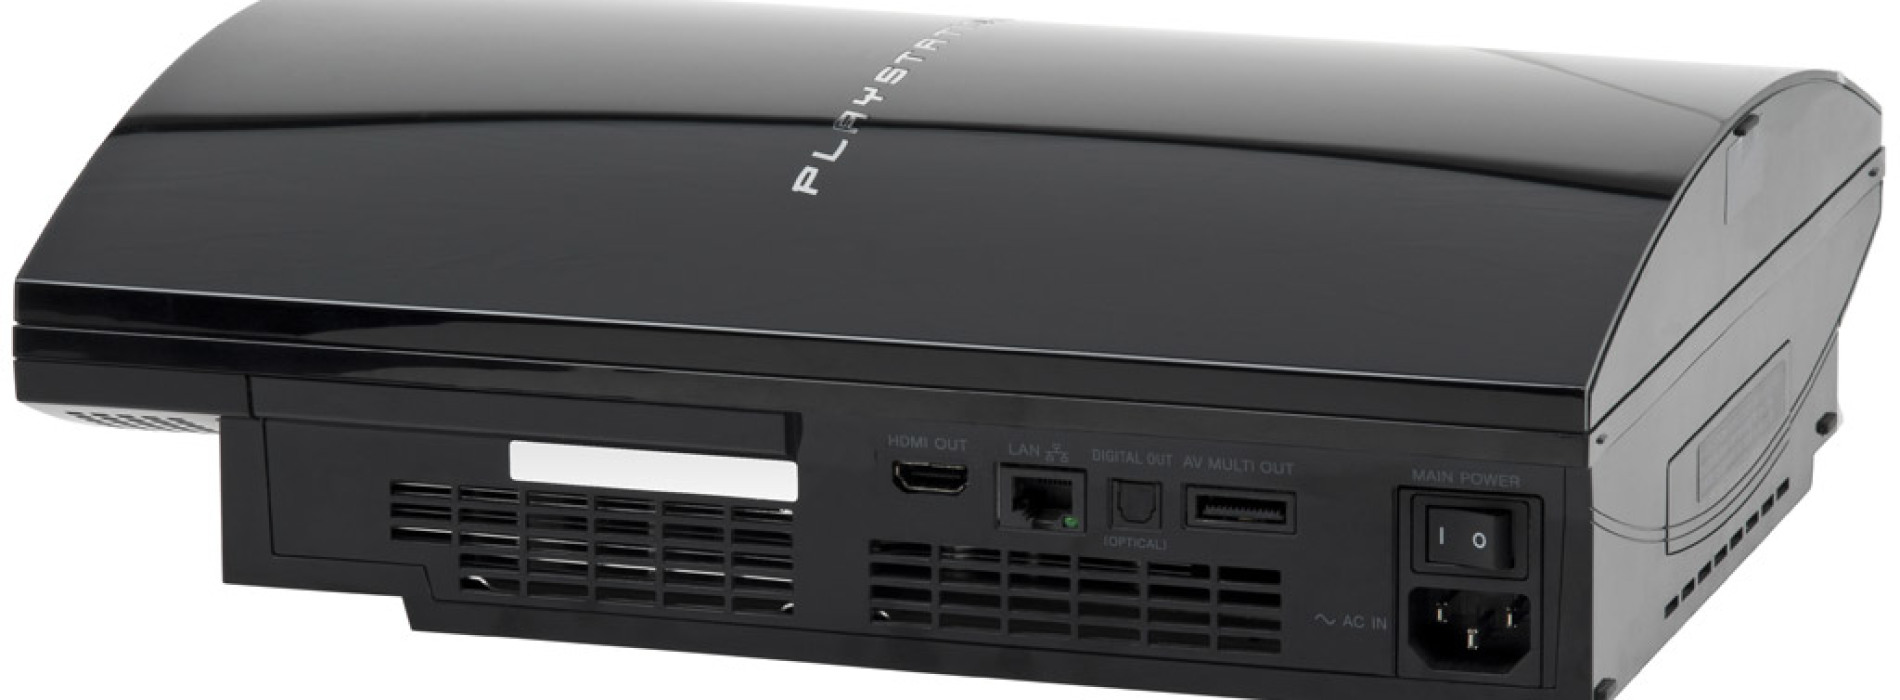 Ремонт Sony PlayStation 3 fat